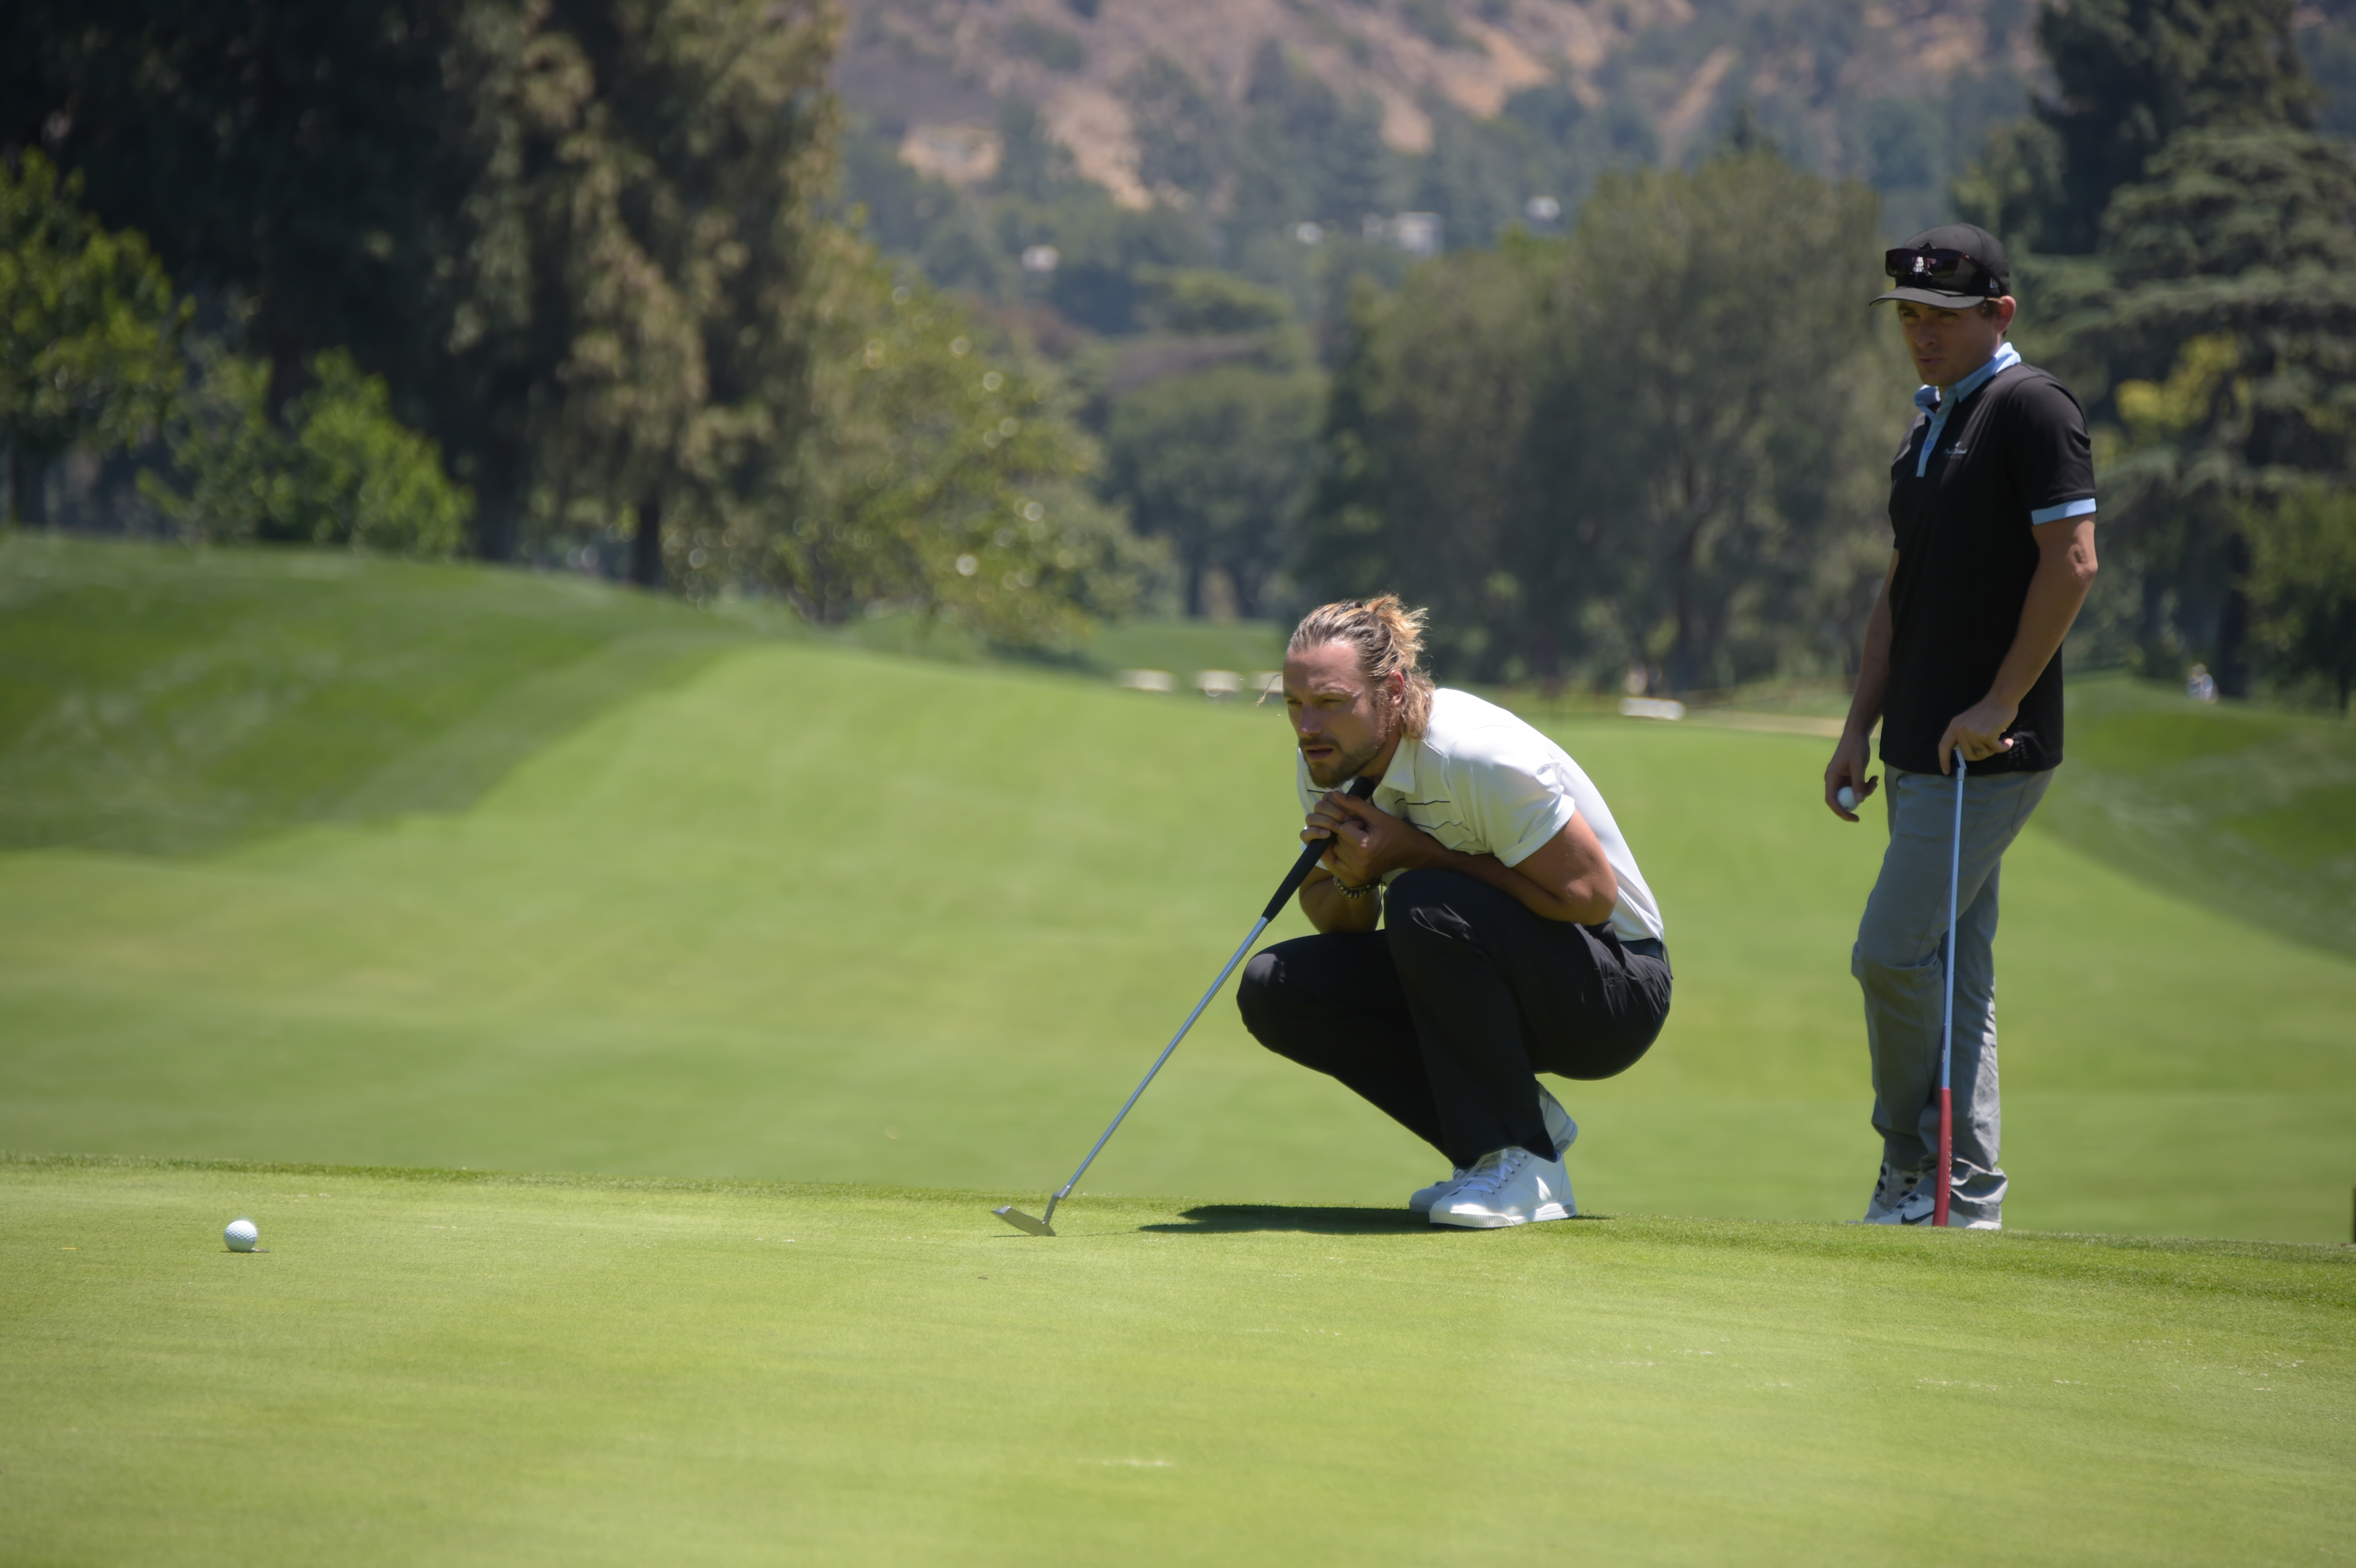 Gabriel Aubry plays at the Screen Actors Guild Foundation's 6th Annual Los Angeles Golf Classic on June 8, 2015 in Burbank, California. (Photo by Jason Kempin/Getty Images for The Screen Actors Guild Foundation)